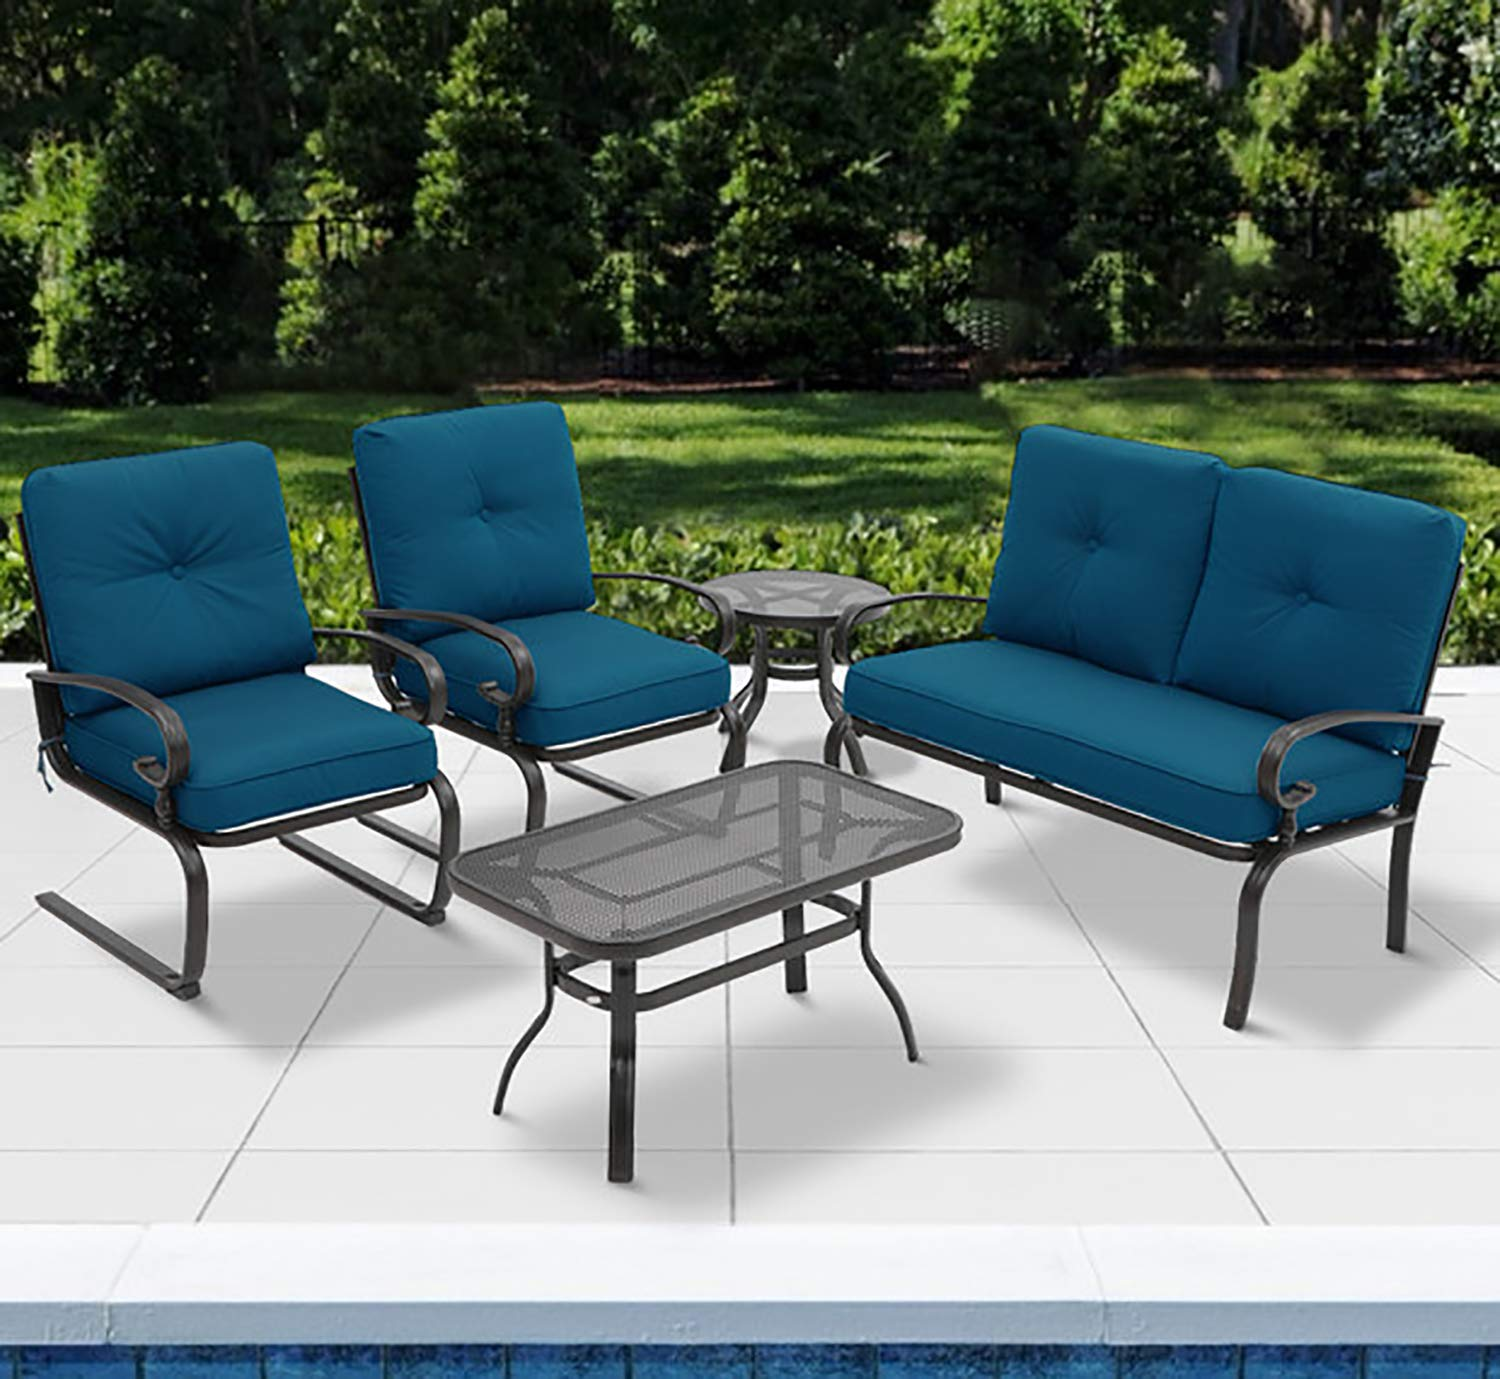 Incbruce 5Pcs Outdoor Patio Furniture Conversation Sets (Loveseat, Coffee Table and Bistro Table, 2 Spring Chair) -Wrought Iron Chair Set with Peacock Blue Cushions